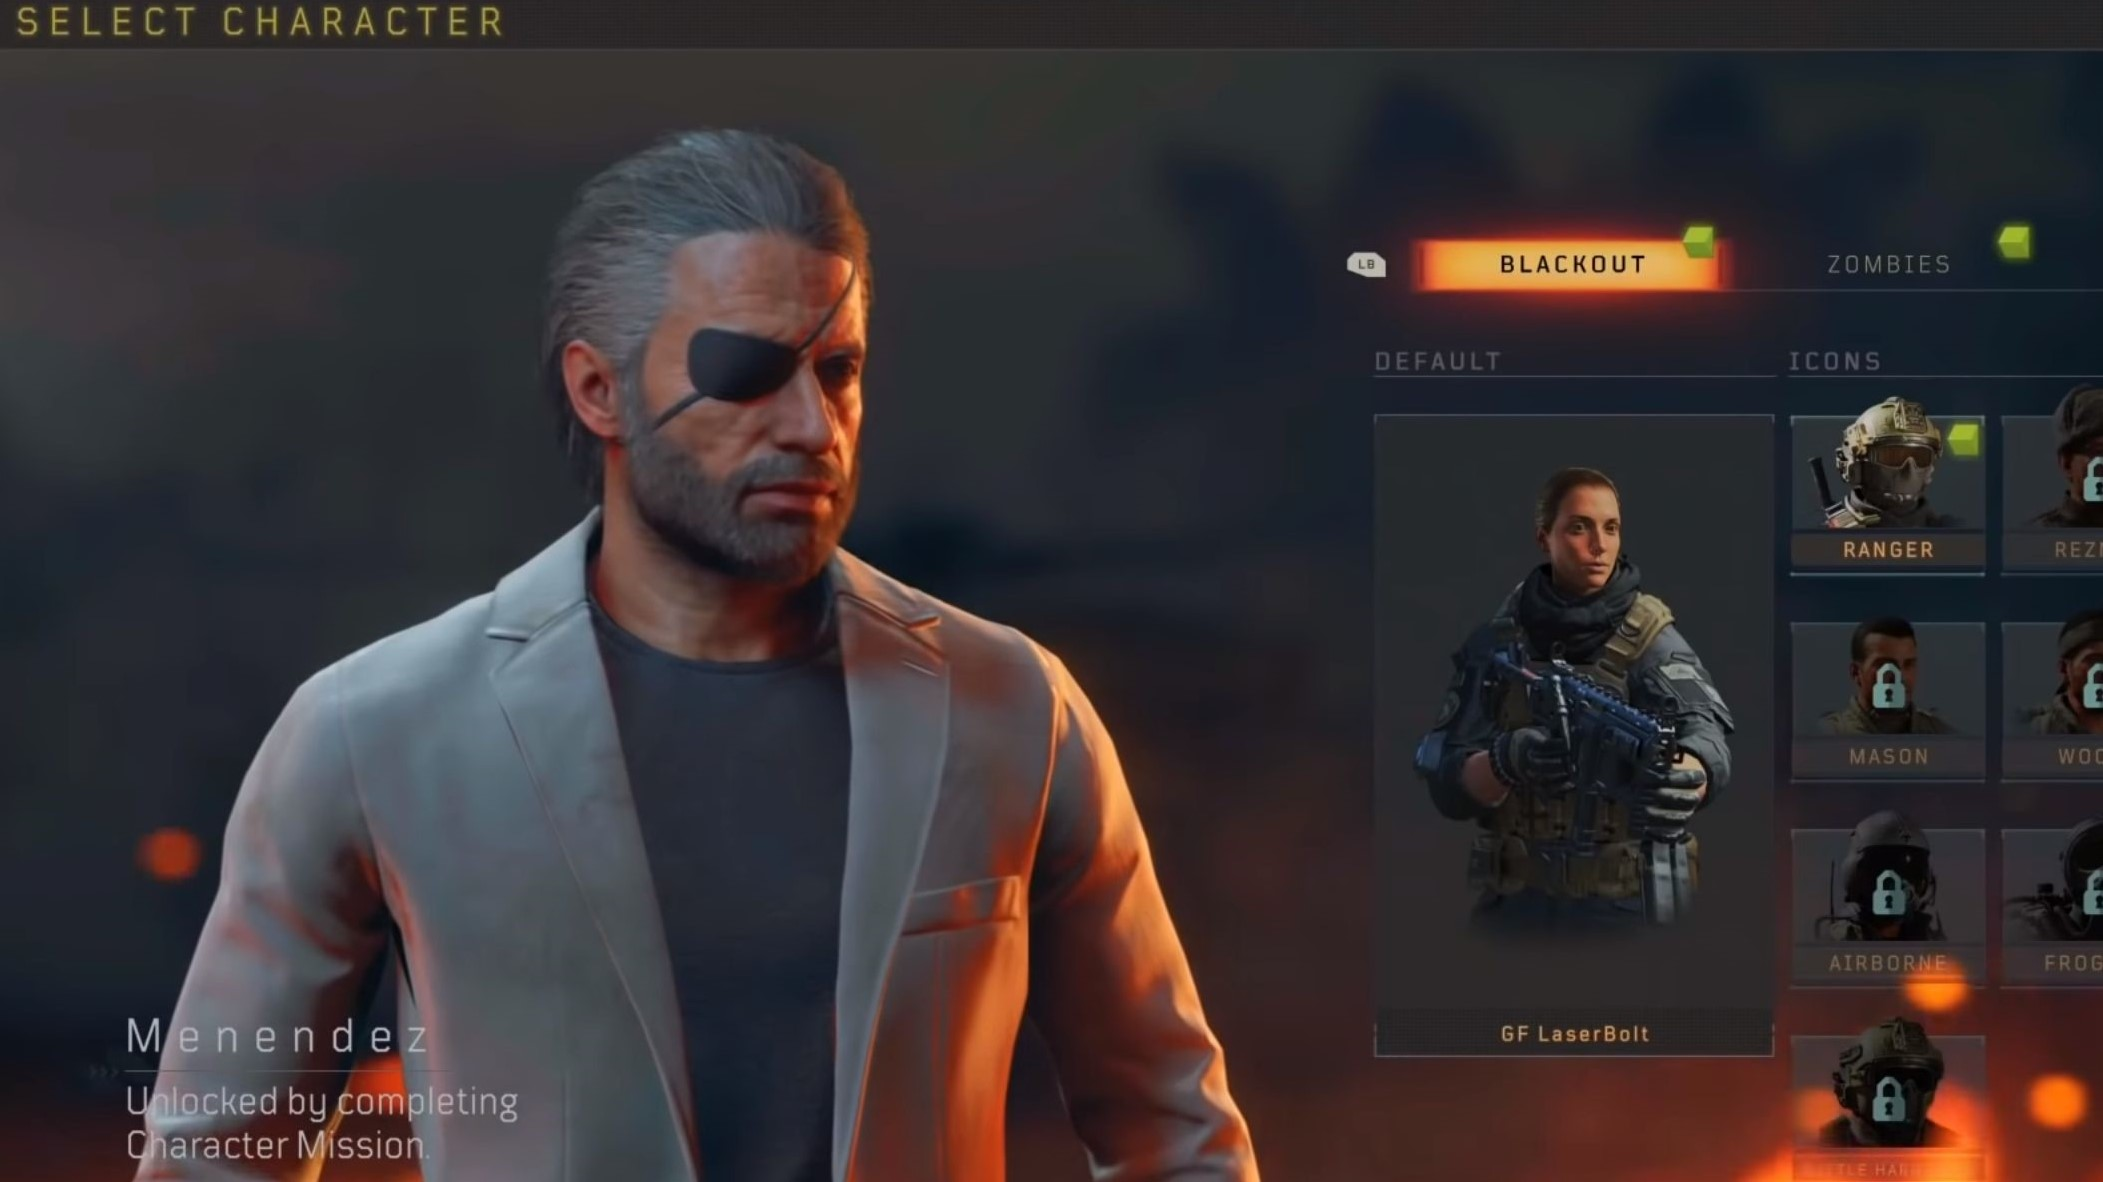 Blackout skins: how to unlock new characters for Black Ops 4 battle